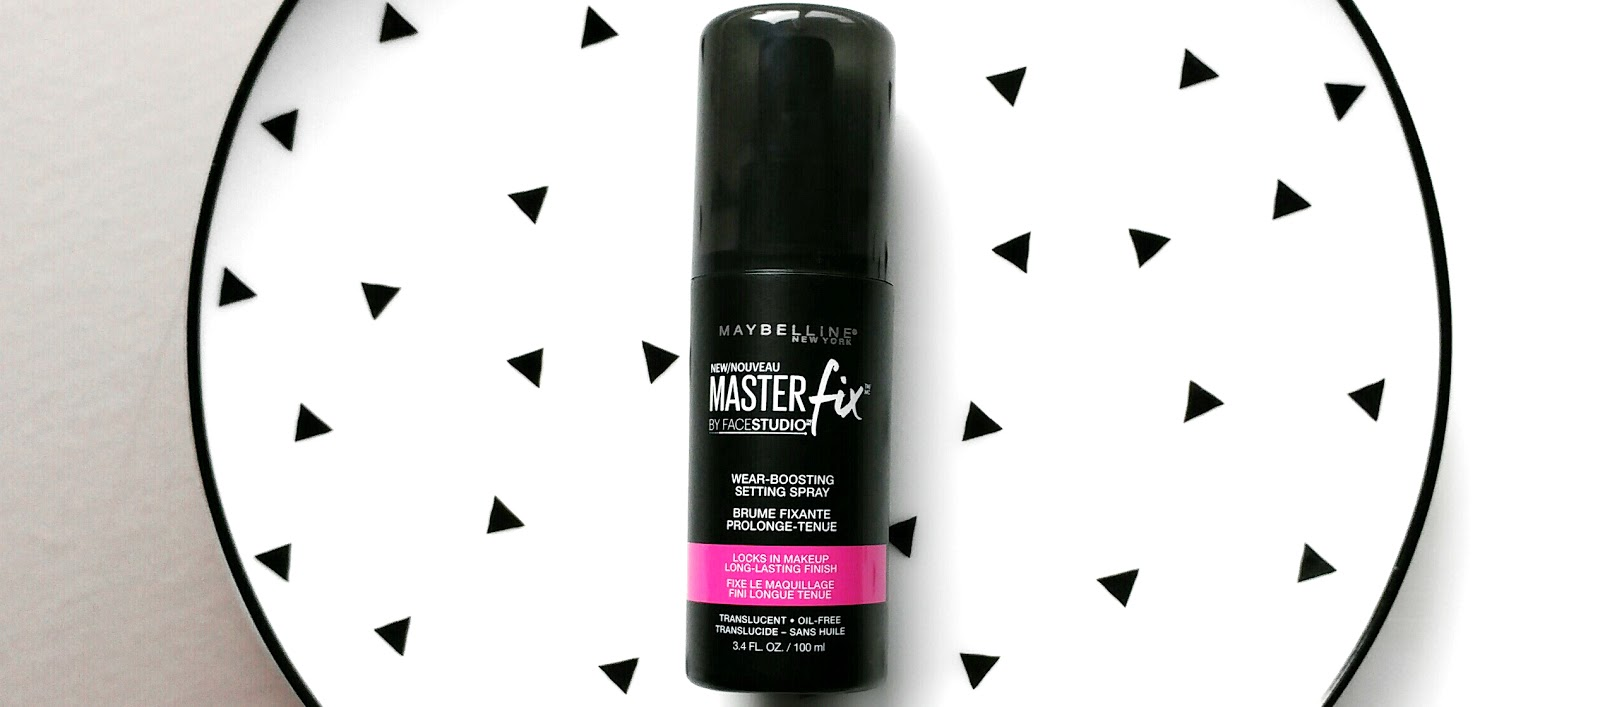 Maybelline Master Fix Setting Spray Review and Demo